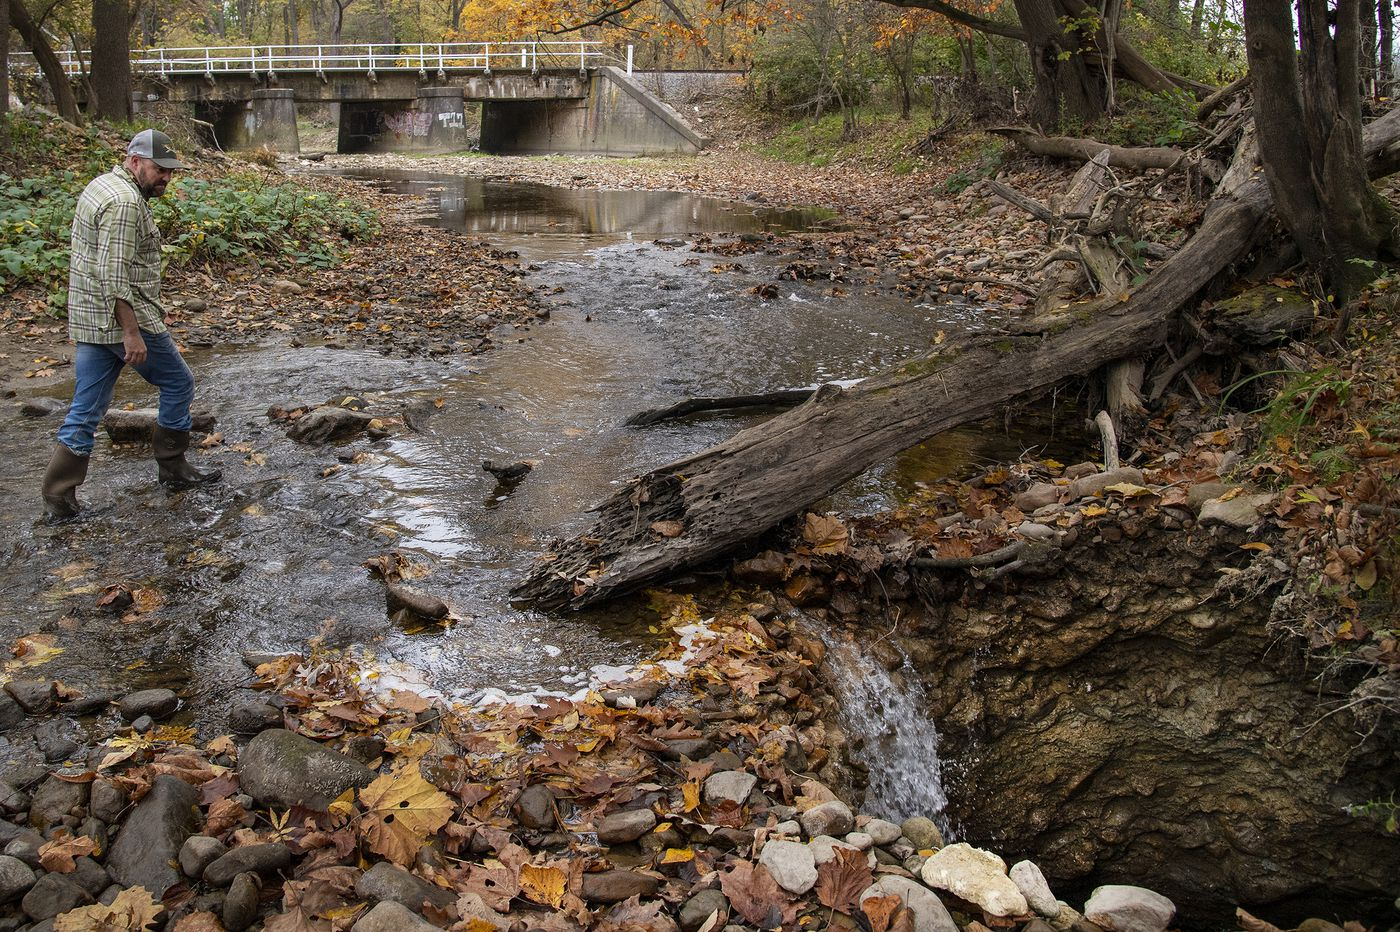 Sinkholes are draining a prized Lehigh Valley trout stream. Is nature to blame, or a nearby cement plant?